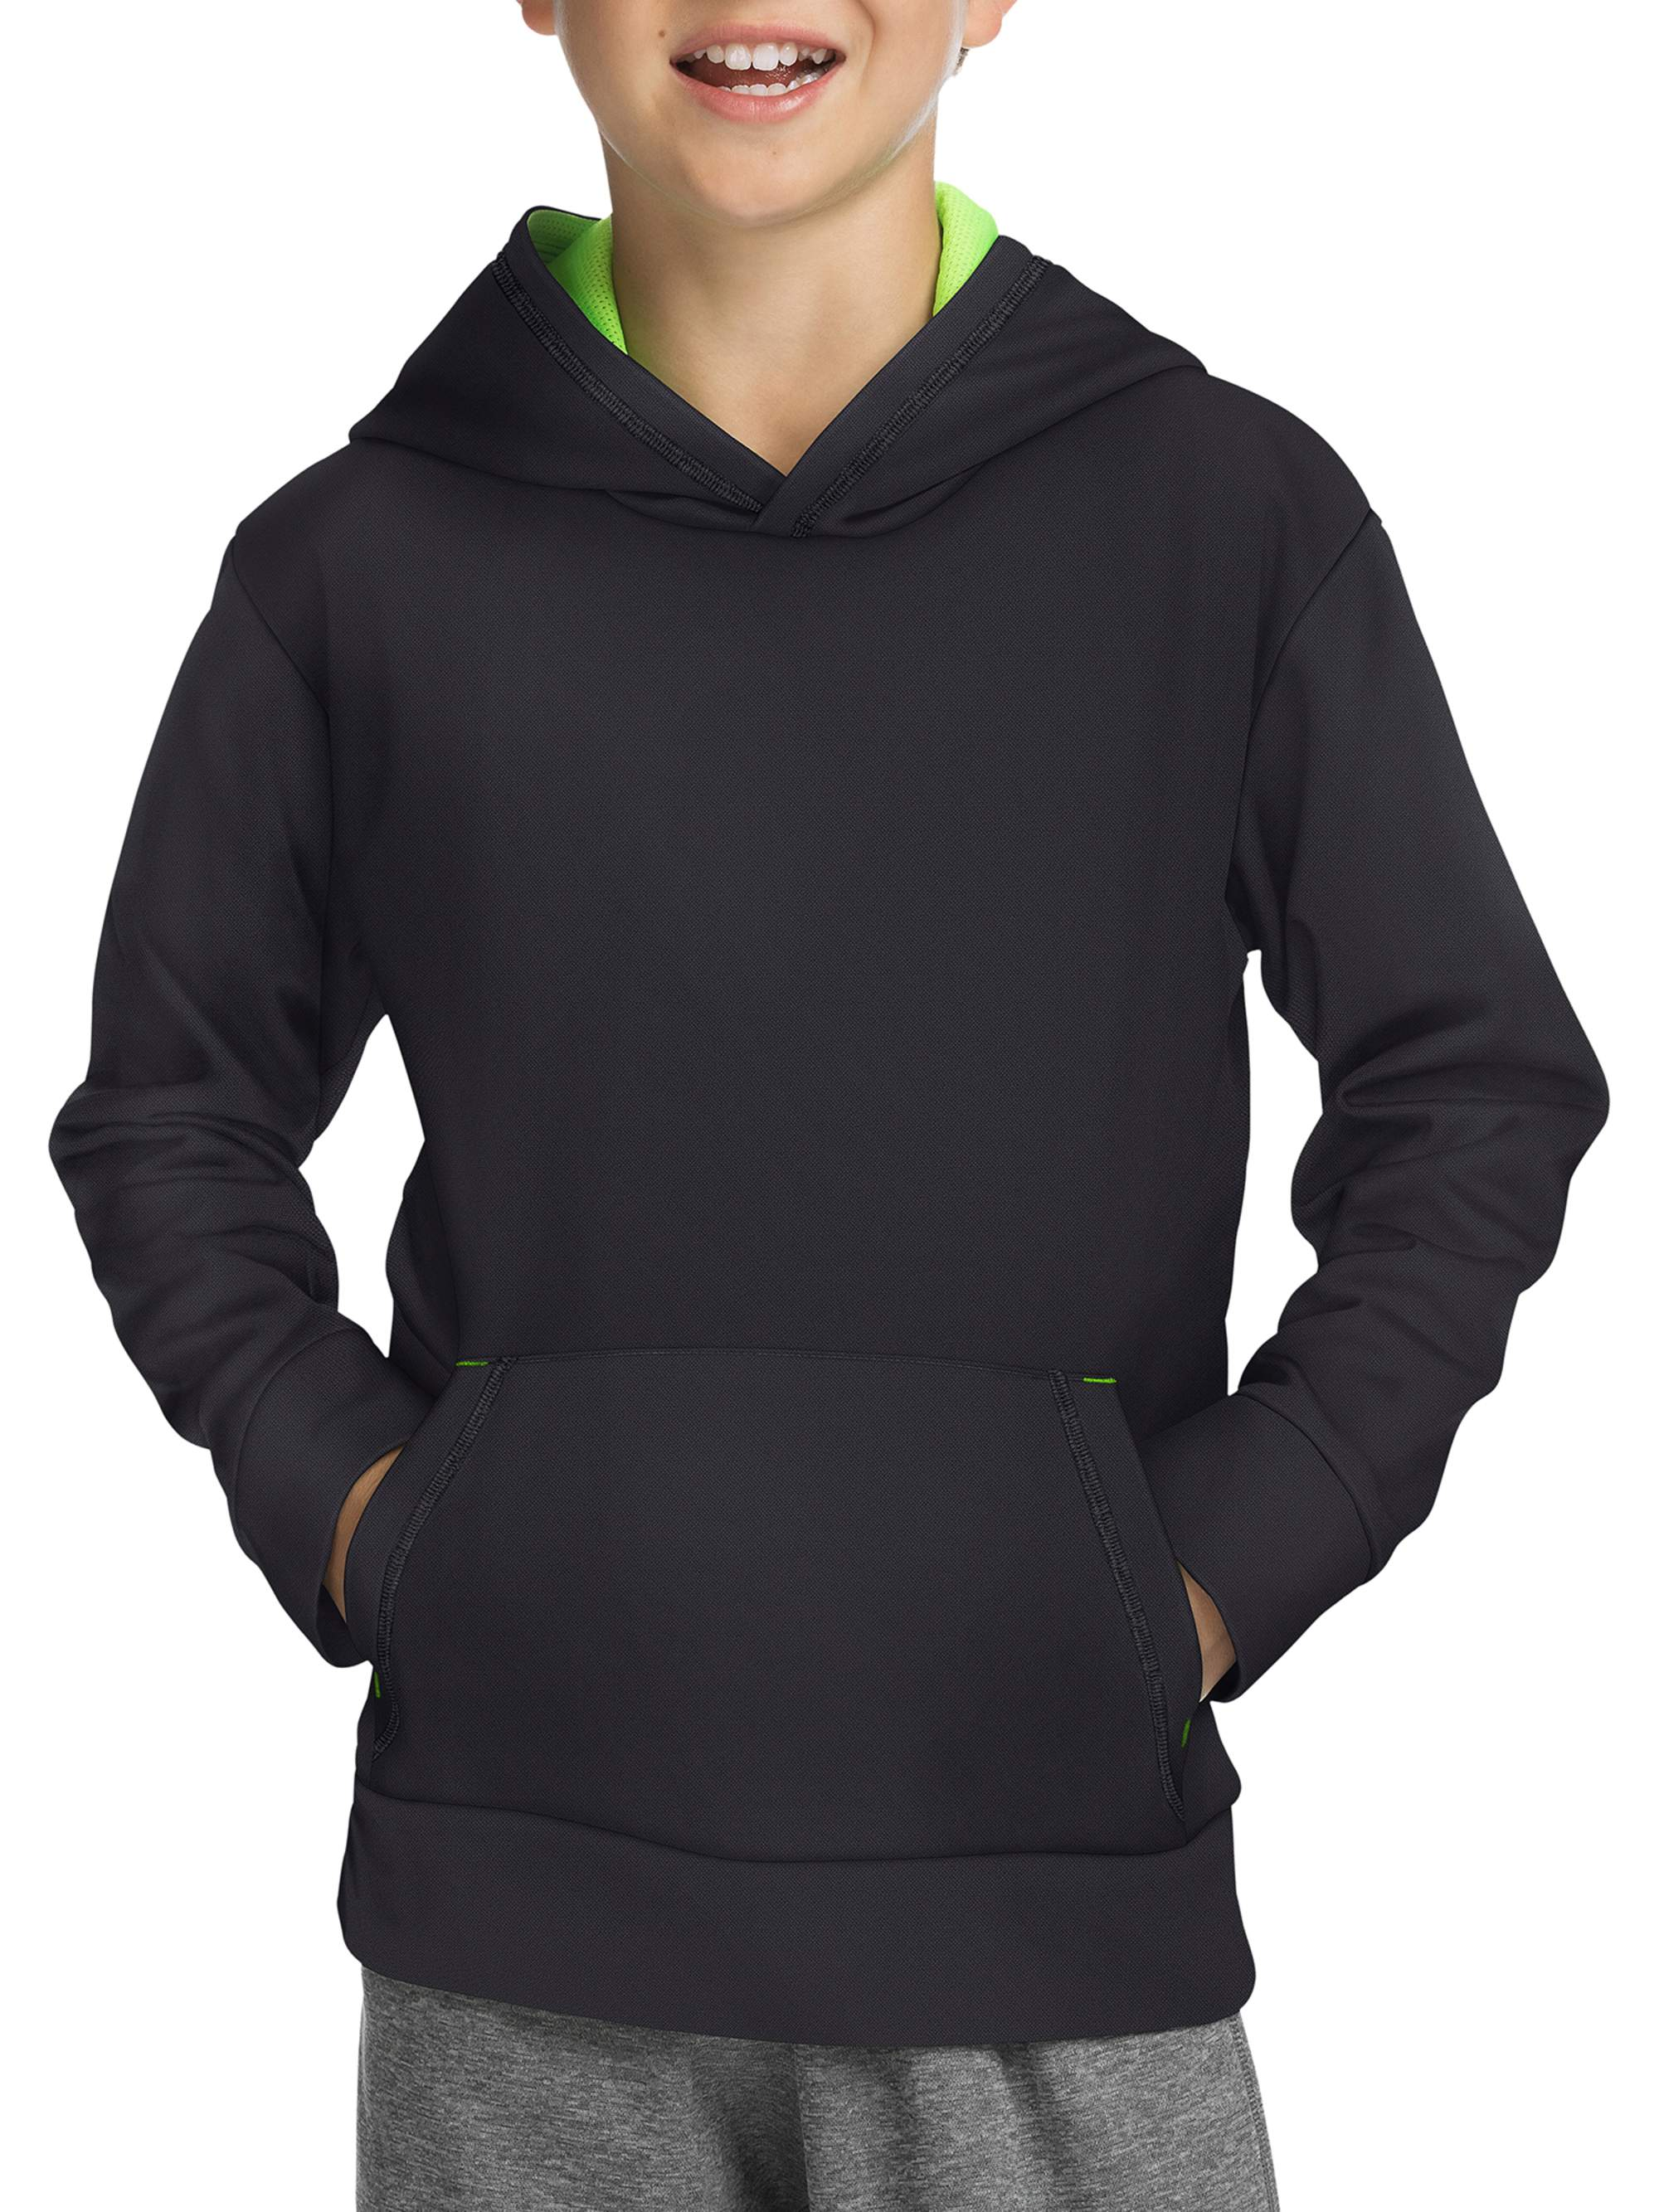 Boys' Tech Fleece Raglan Hoodie